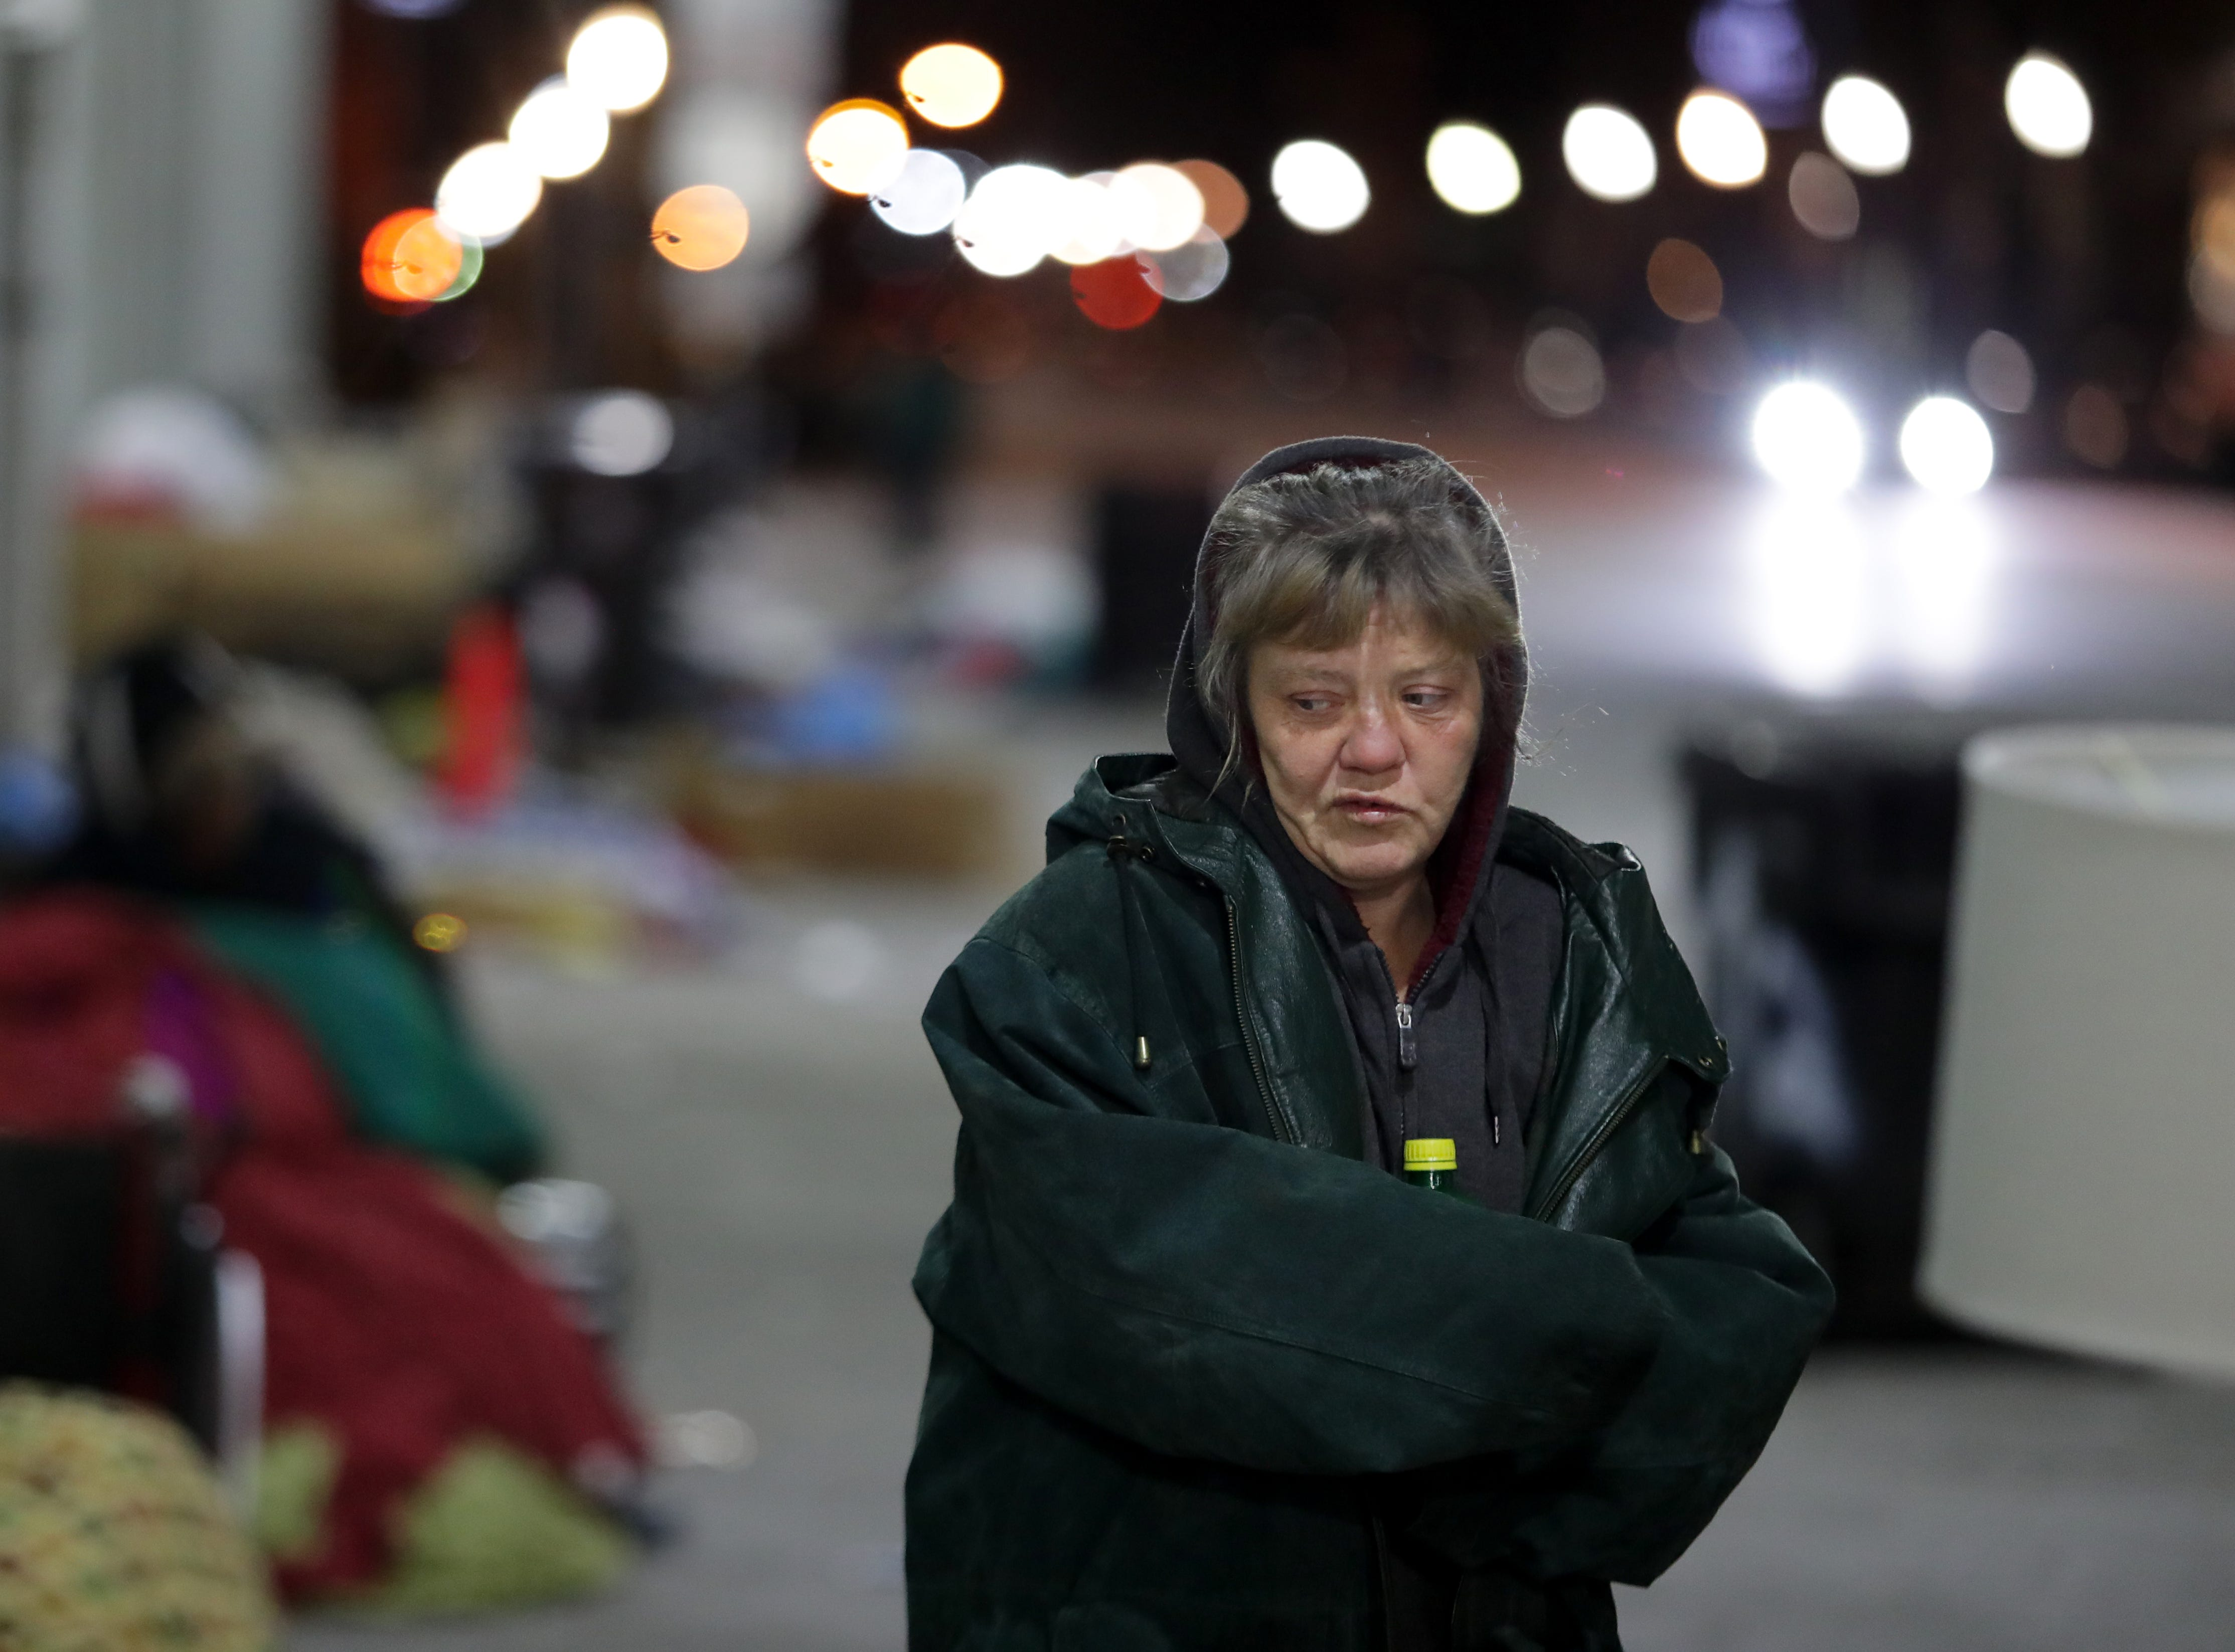 Tonya Collier, a homeless woman, left her camp on Jefferson and sleep inside last night due to the extreme cold temperatures. Jan. 31, 2019